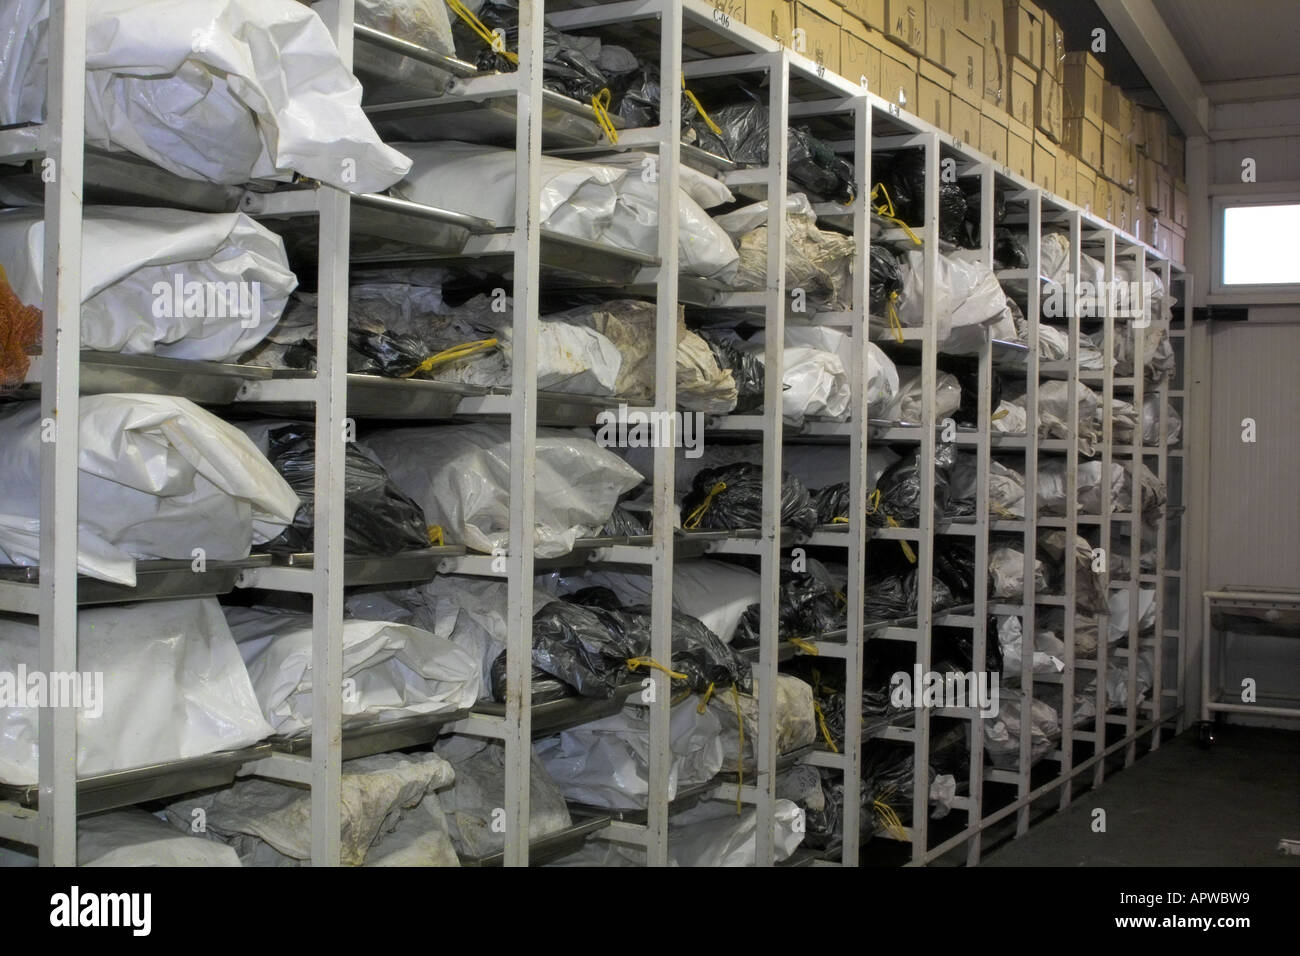 Body bags at the International Commission for Missing Persons Bosnia Herzegovina - Stock Image